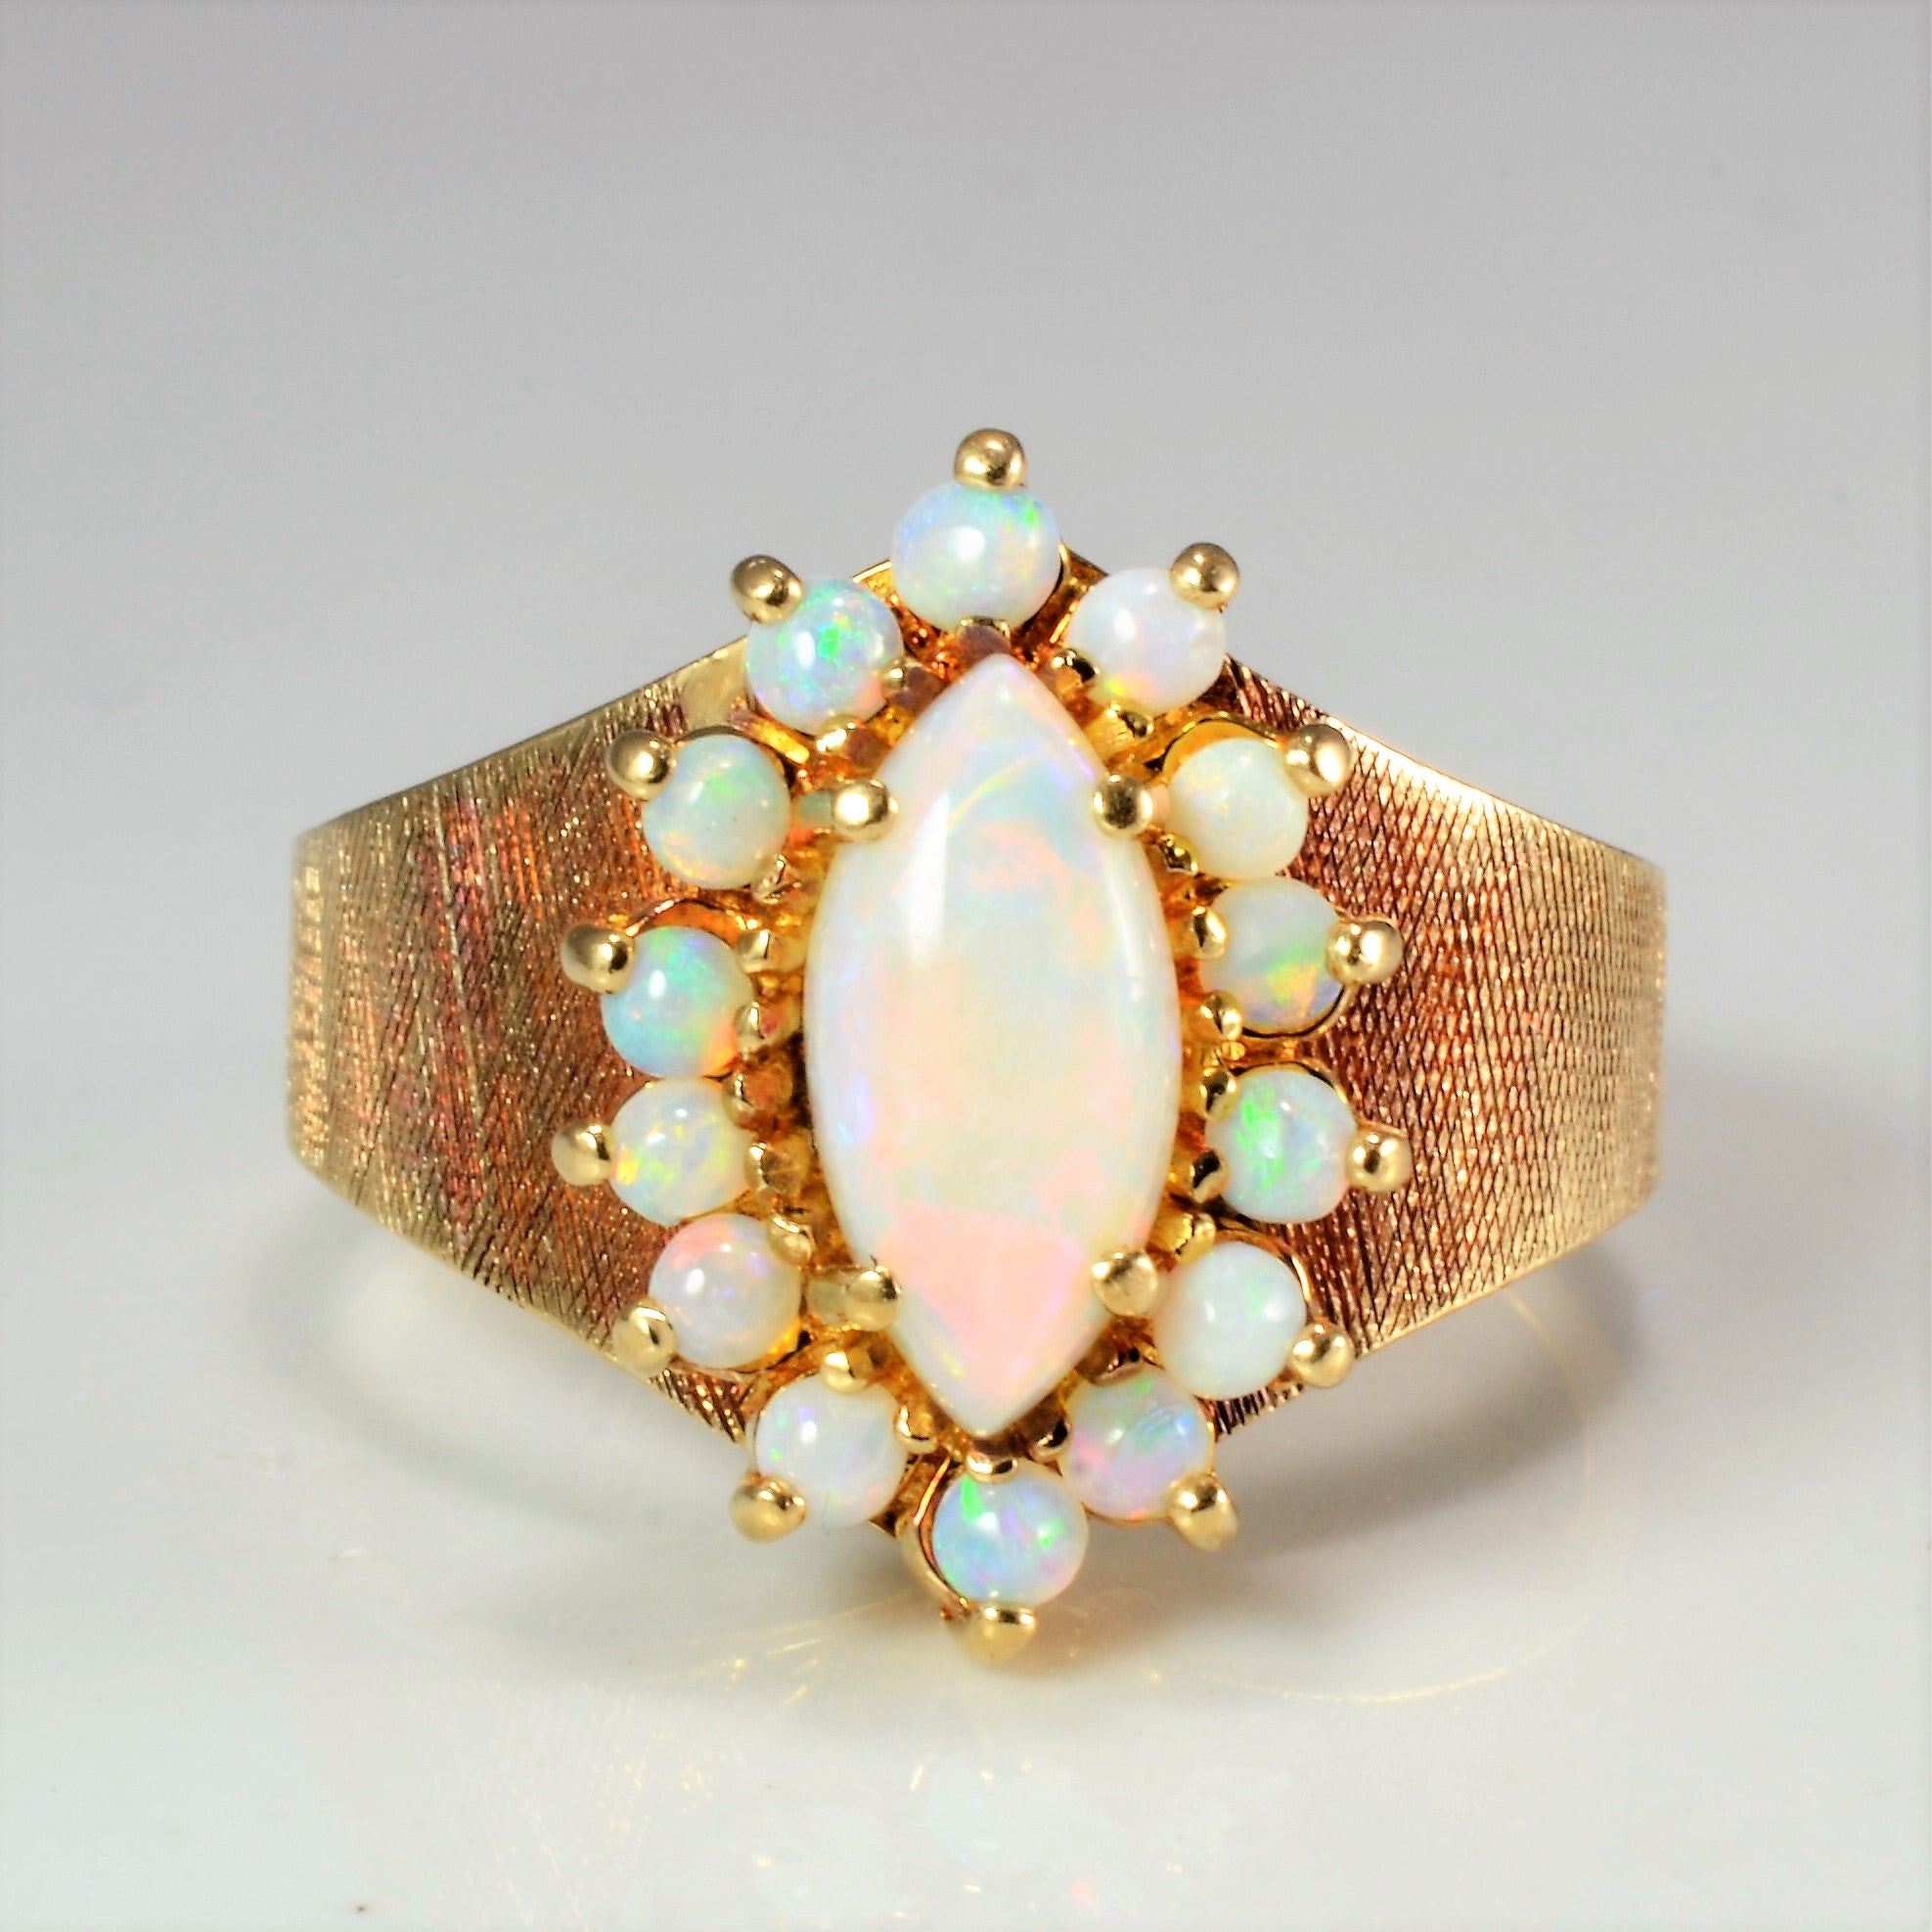 'Birks' Marquise Cluster Opal Ring | SZ 7 |